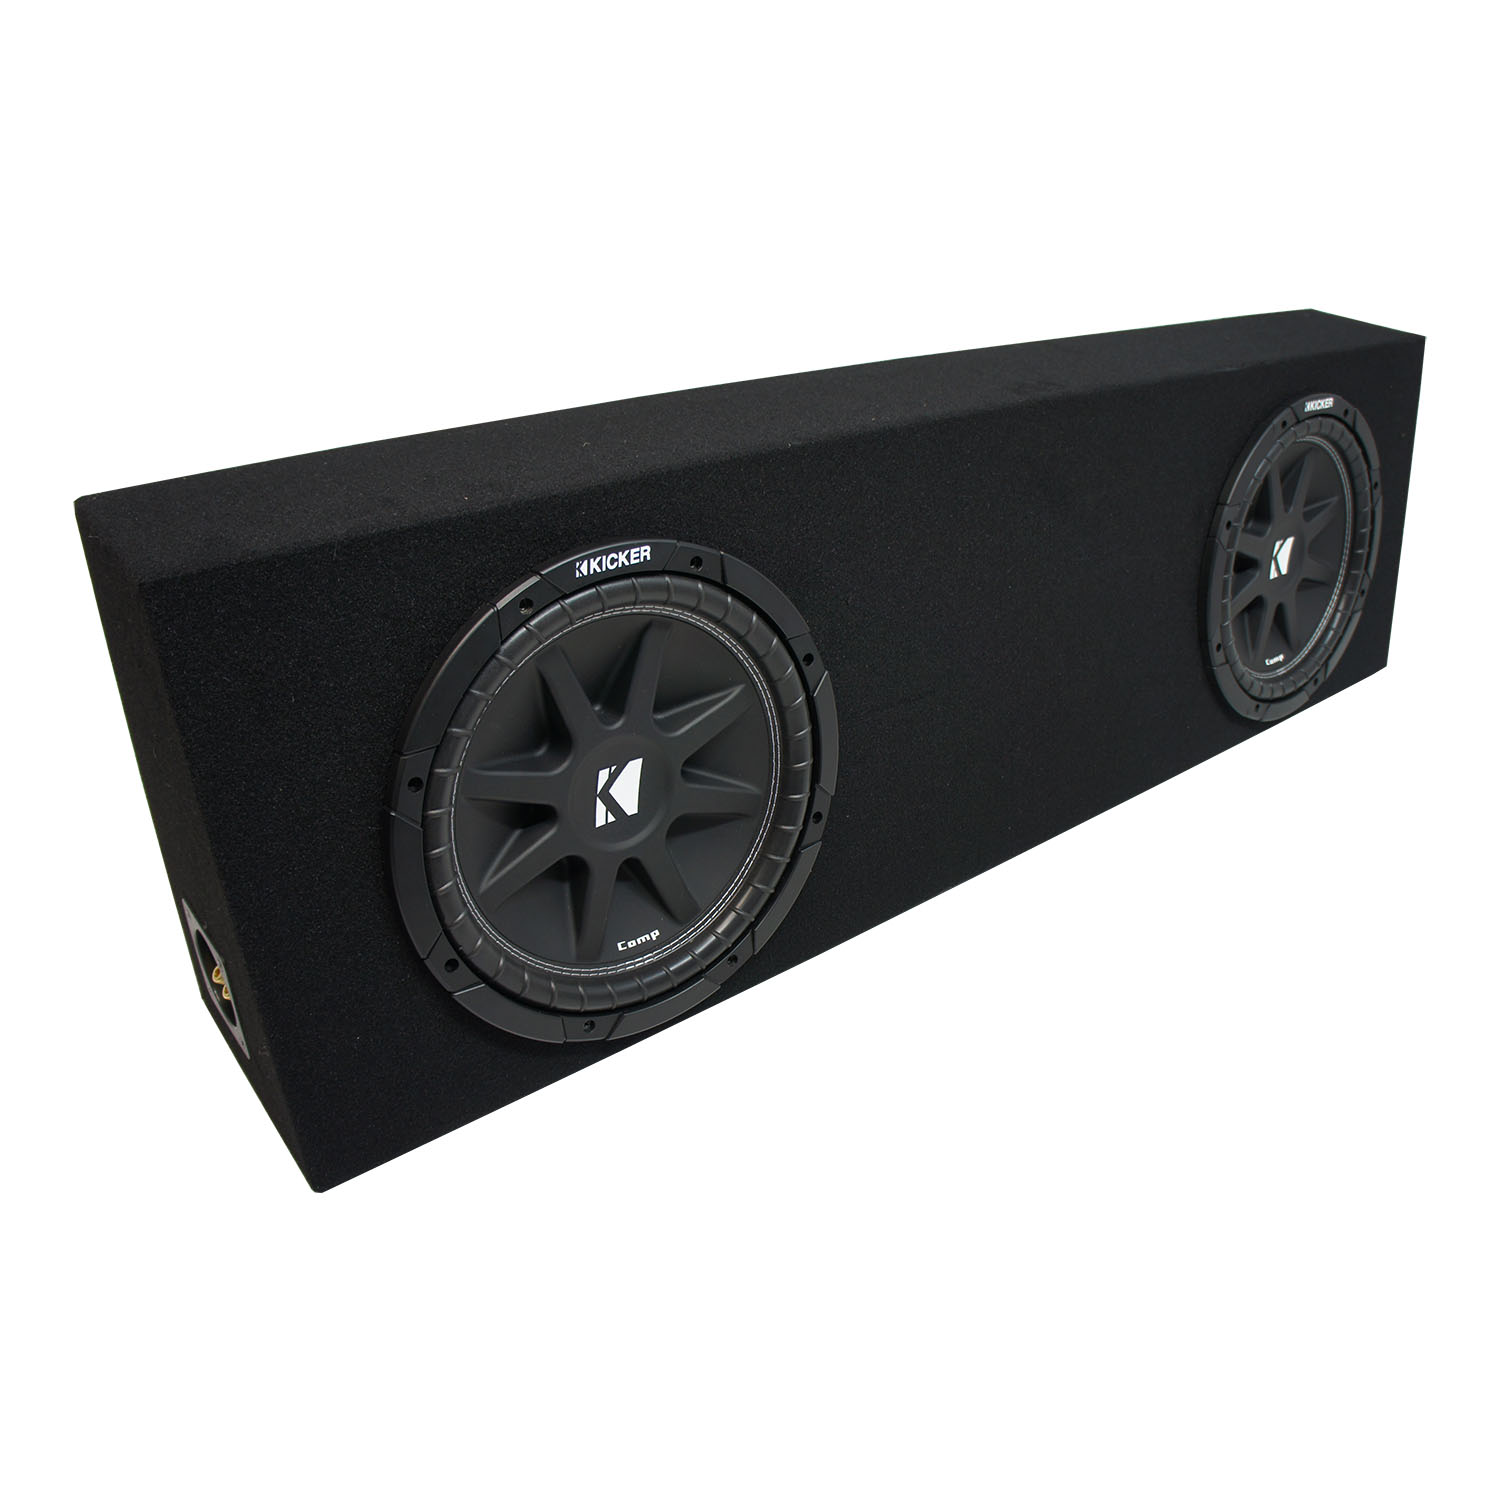 "Universal Regular Cab Truck Kicker Comp C10 Dual 10"" Black Sub Box Enclosure - Final 2 Ohm"